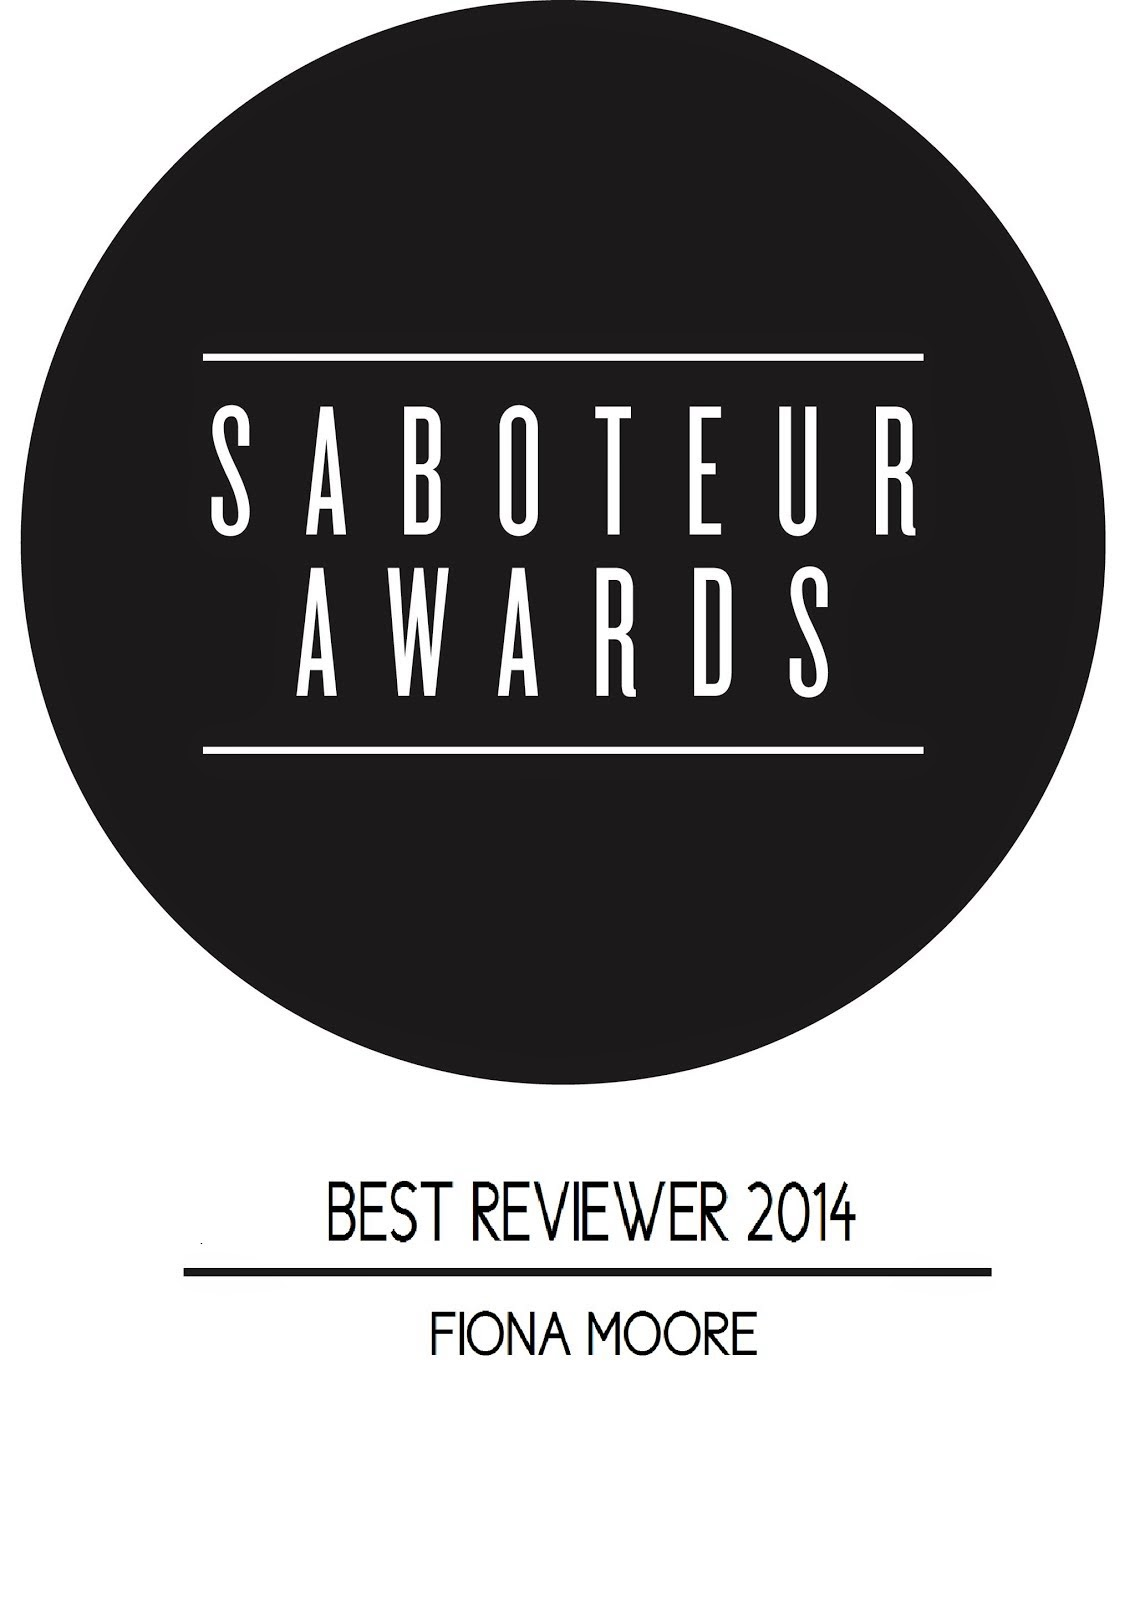 Saboteur Awards Best Reviewer 2014